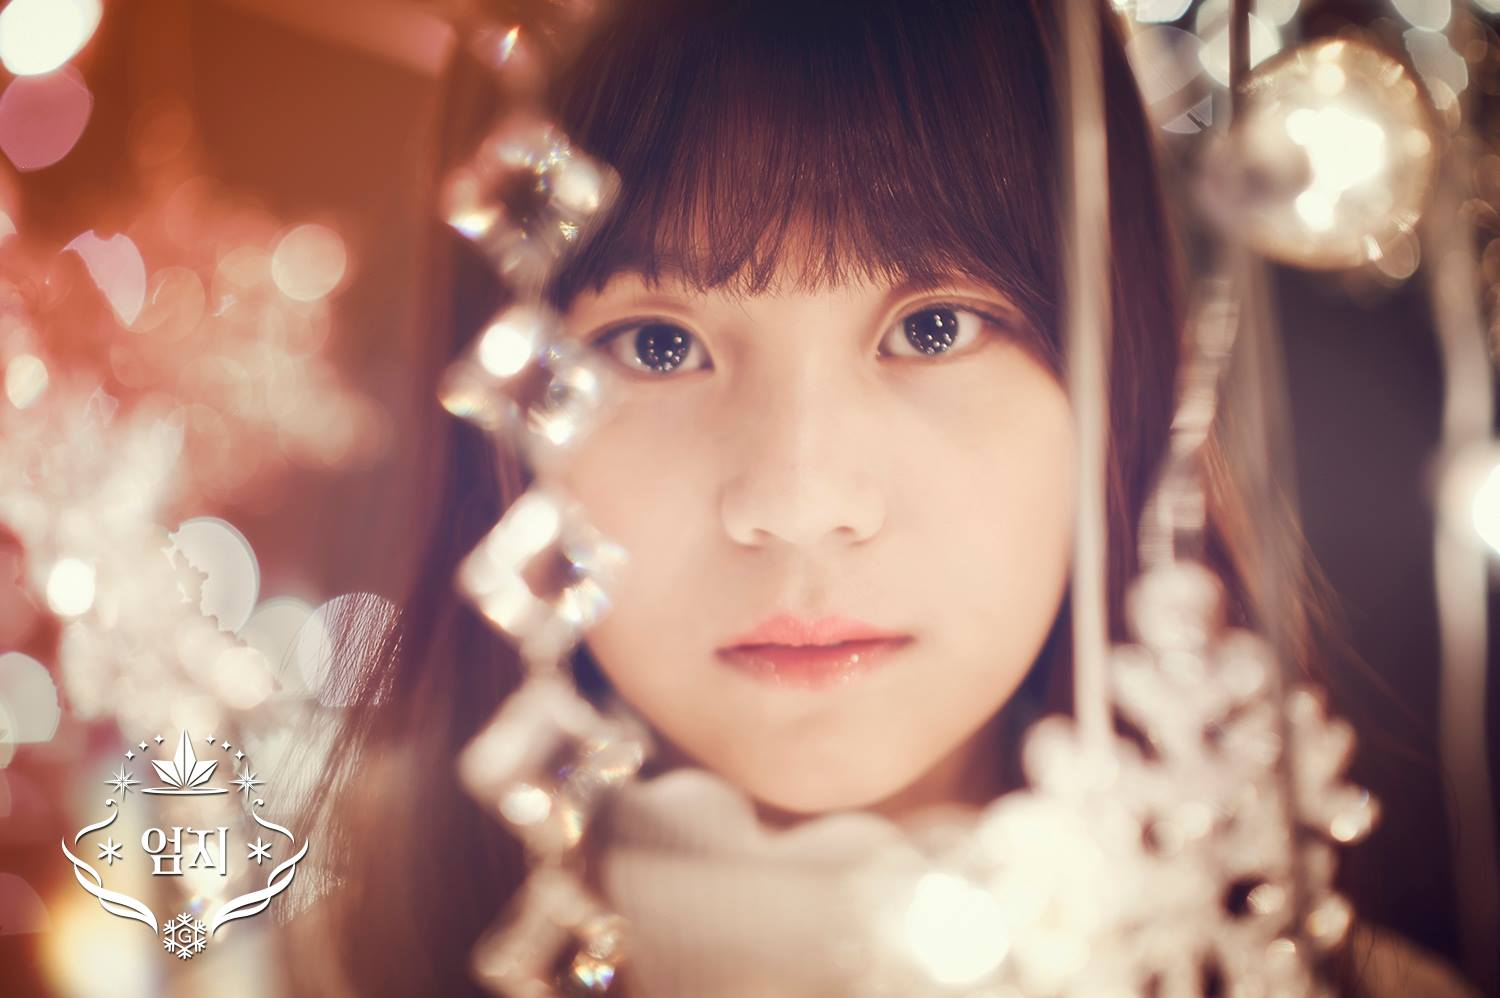 Image: G-Friend's Facebook Page / Source Music